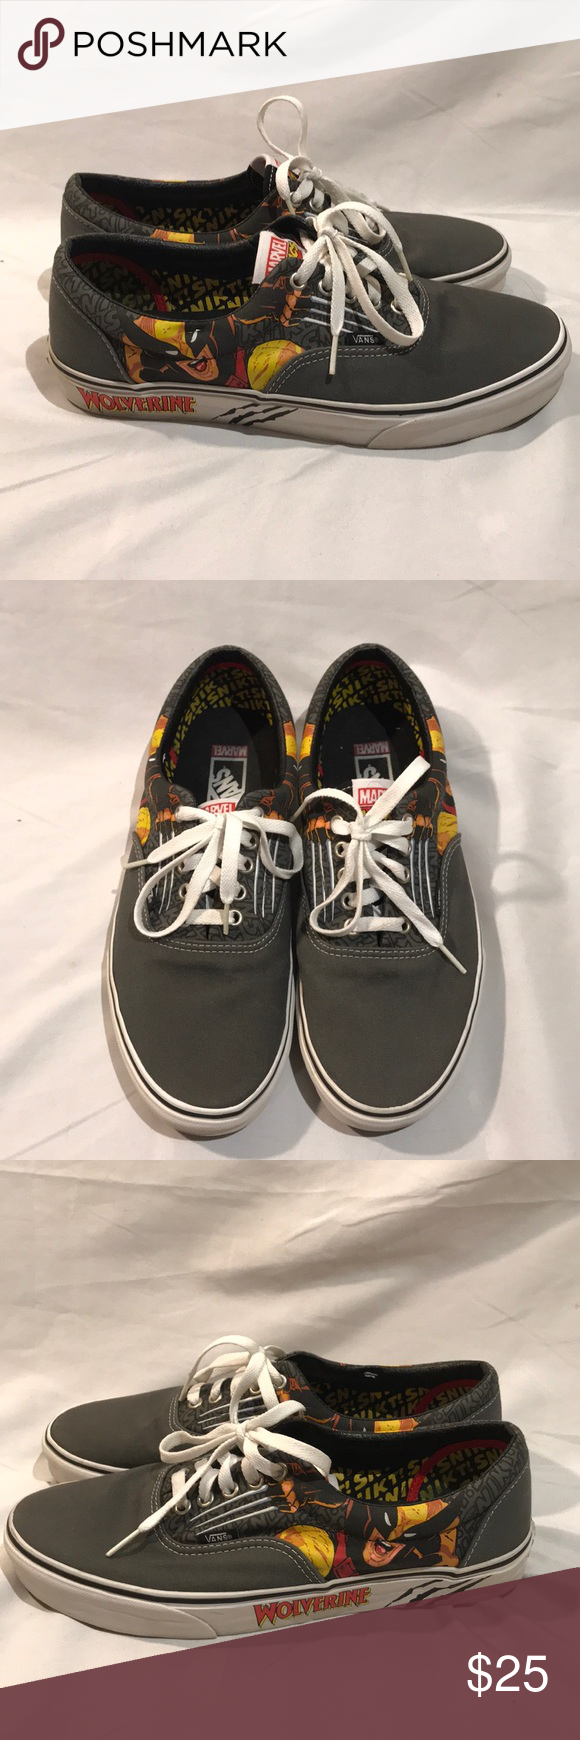 fc8ce49dbcf Vans Marvel Comics Wolverine edition shoes Used. Vans Marvel Comics  Wolverine edition shoes Men s size 10 Vans Shoes Sneakers